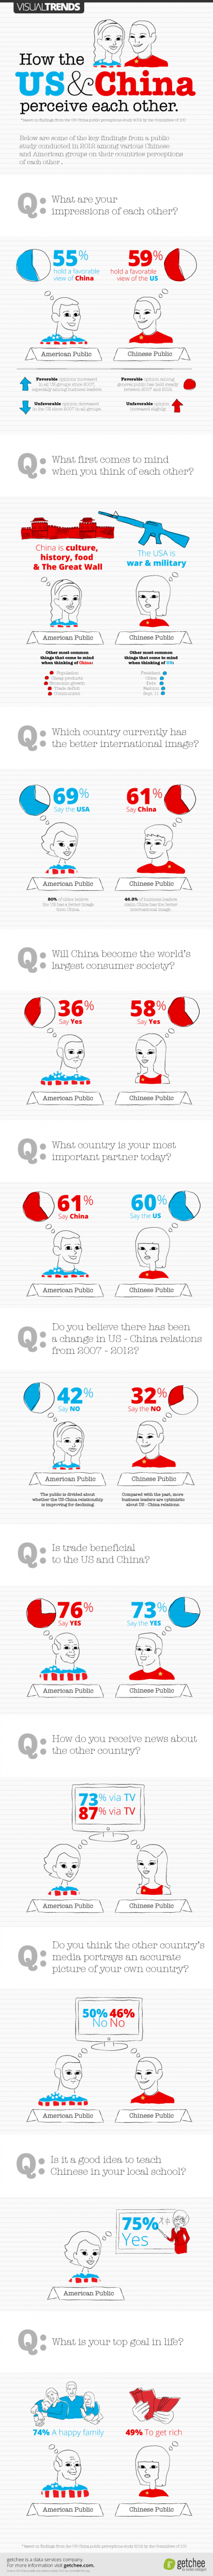 How The US and Chinese Perceive Each Other